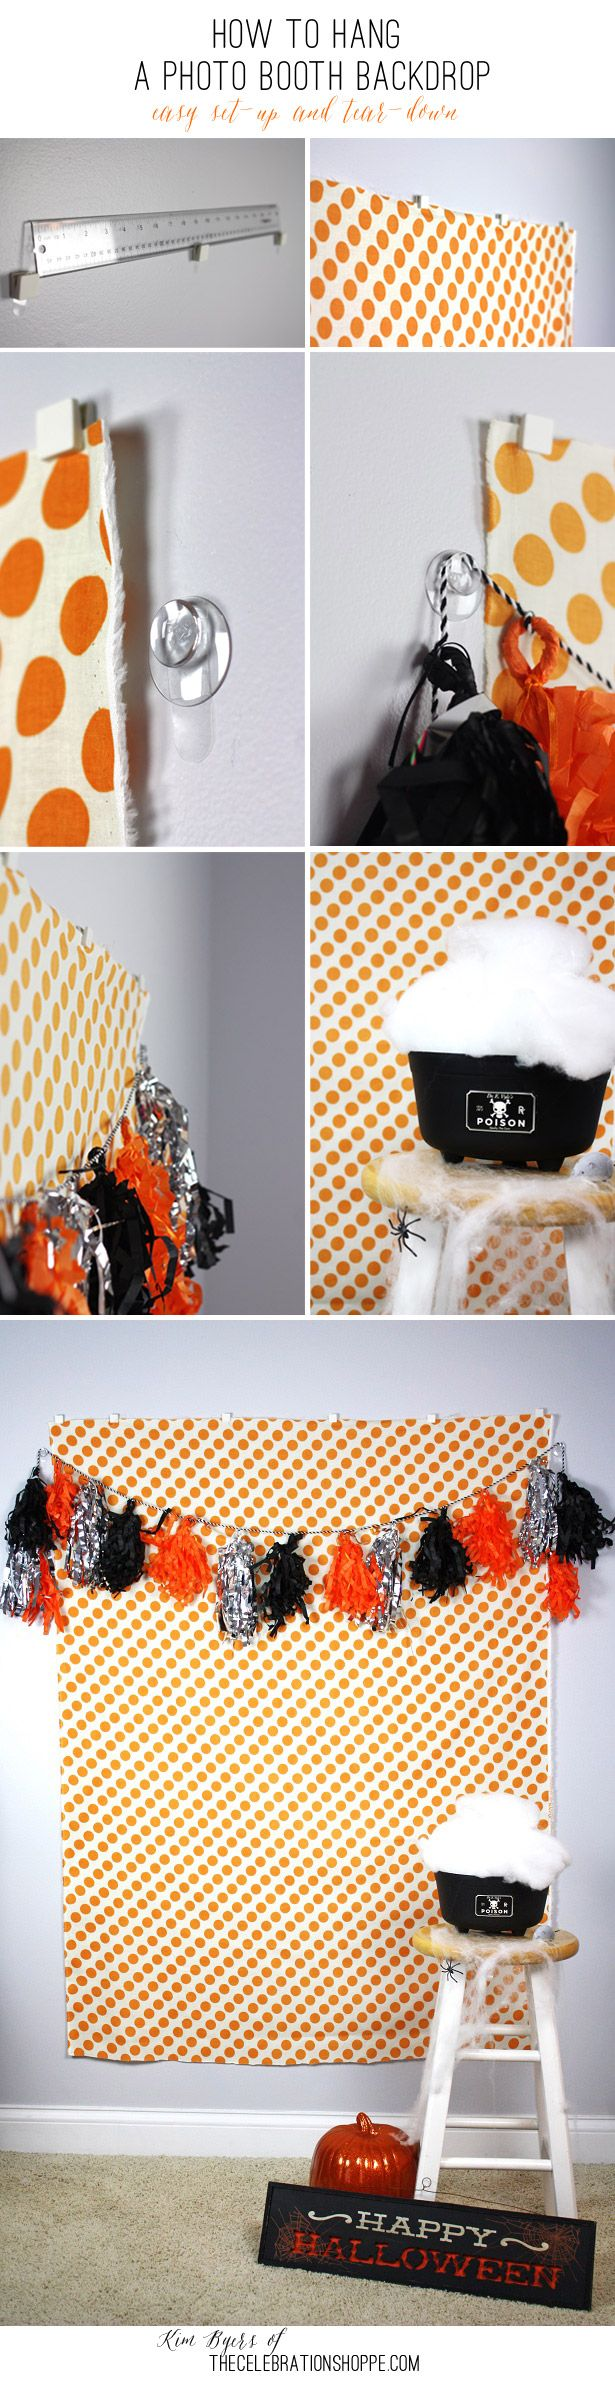 How To Hang A Photo Booth Backdrop – Easy Set-up And Tear-down with @commandbrand   Kim Byers, TheCelebrationShoppe.com #damagefreediy